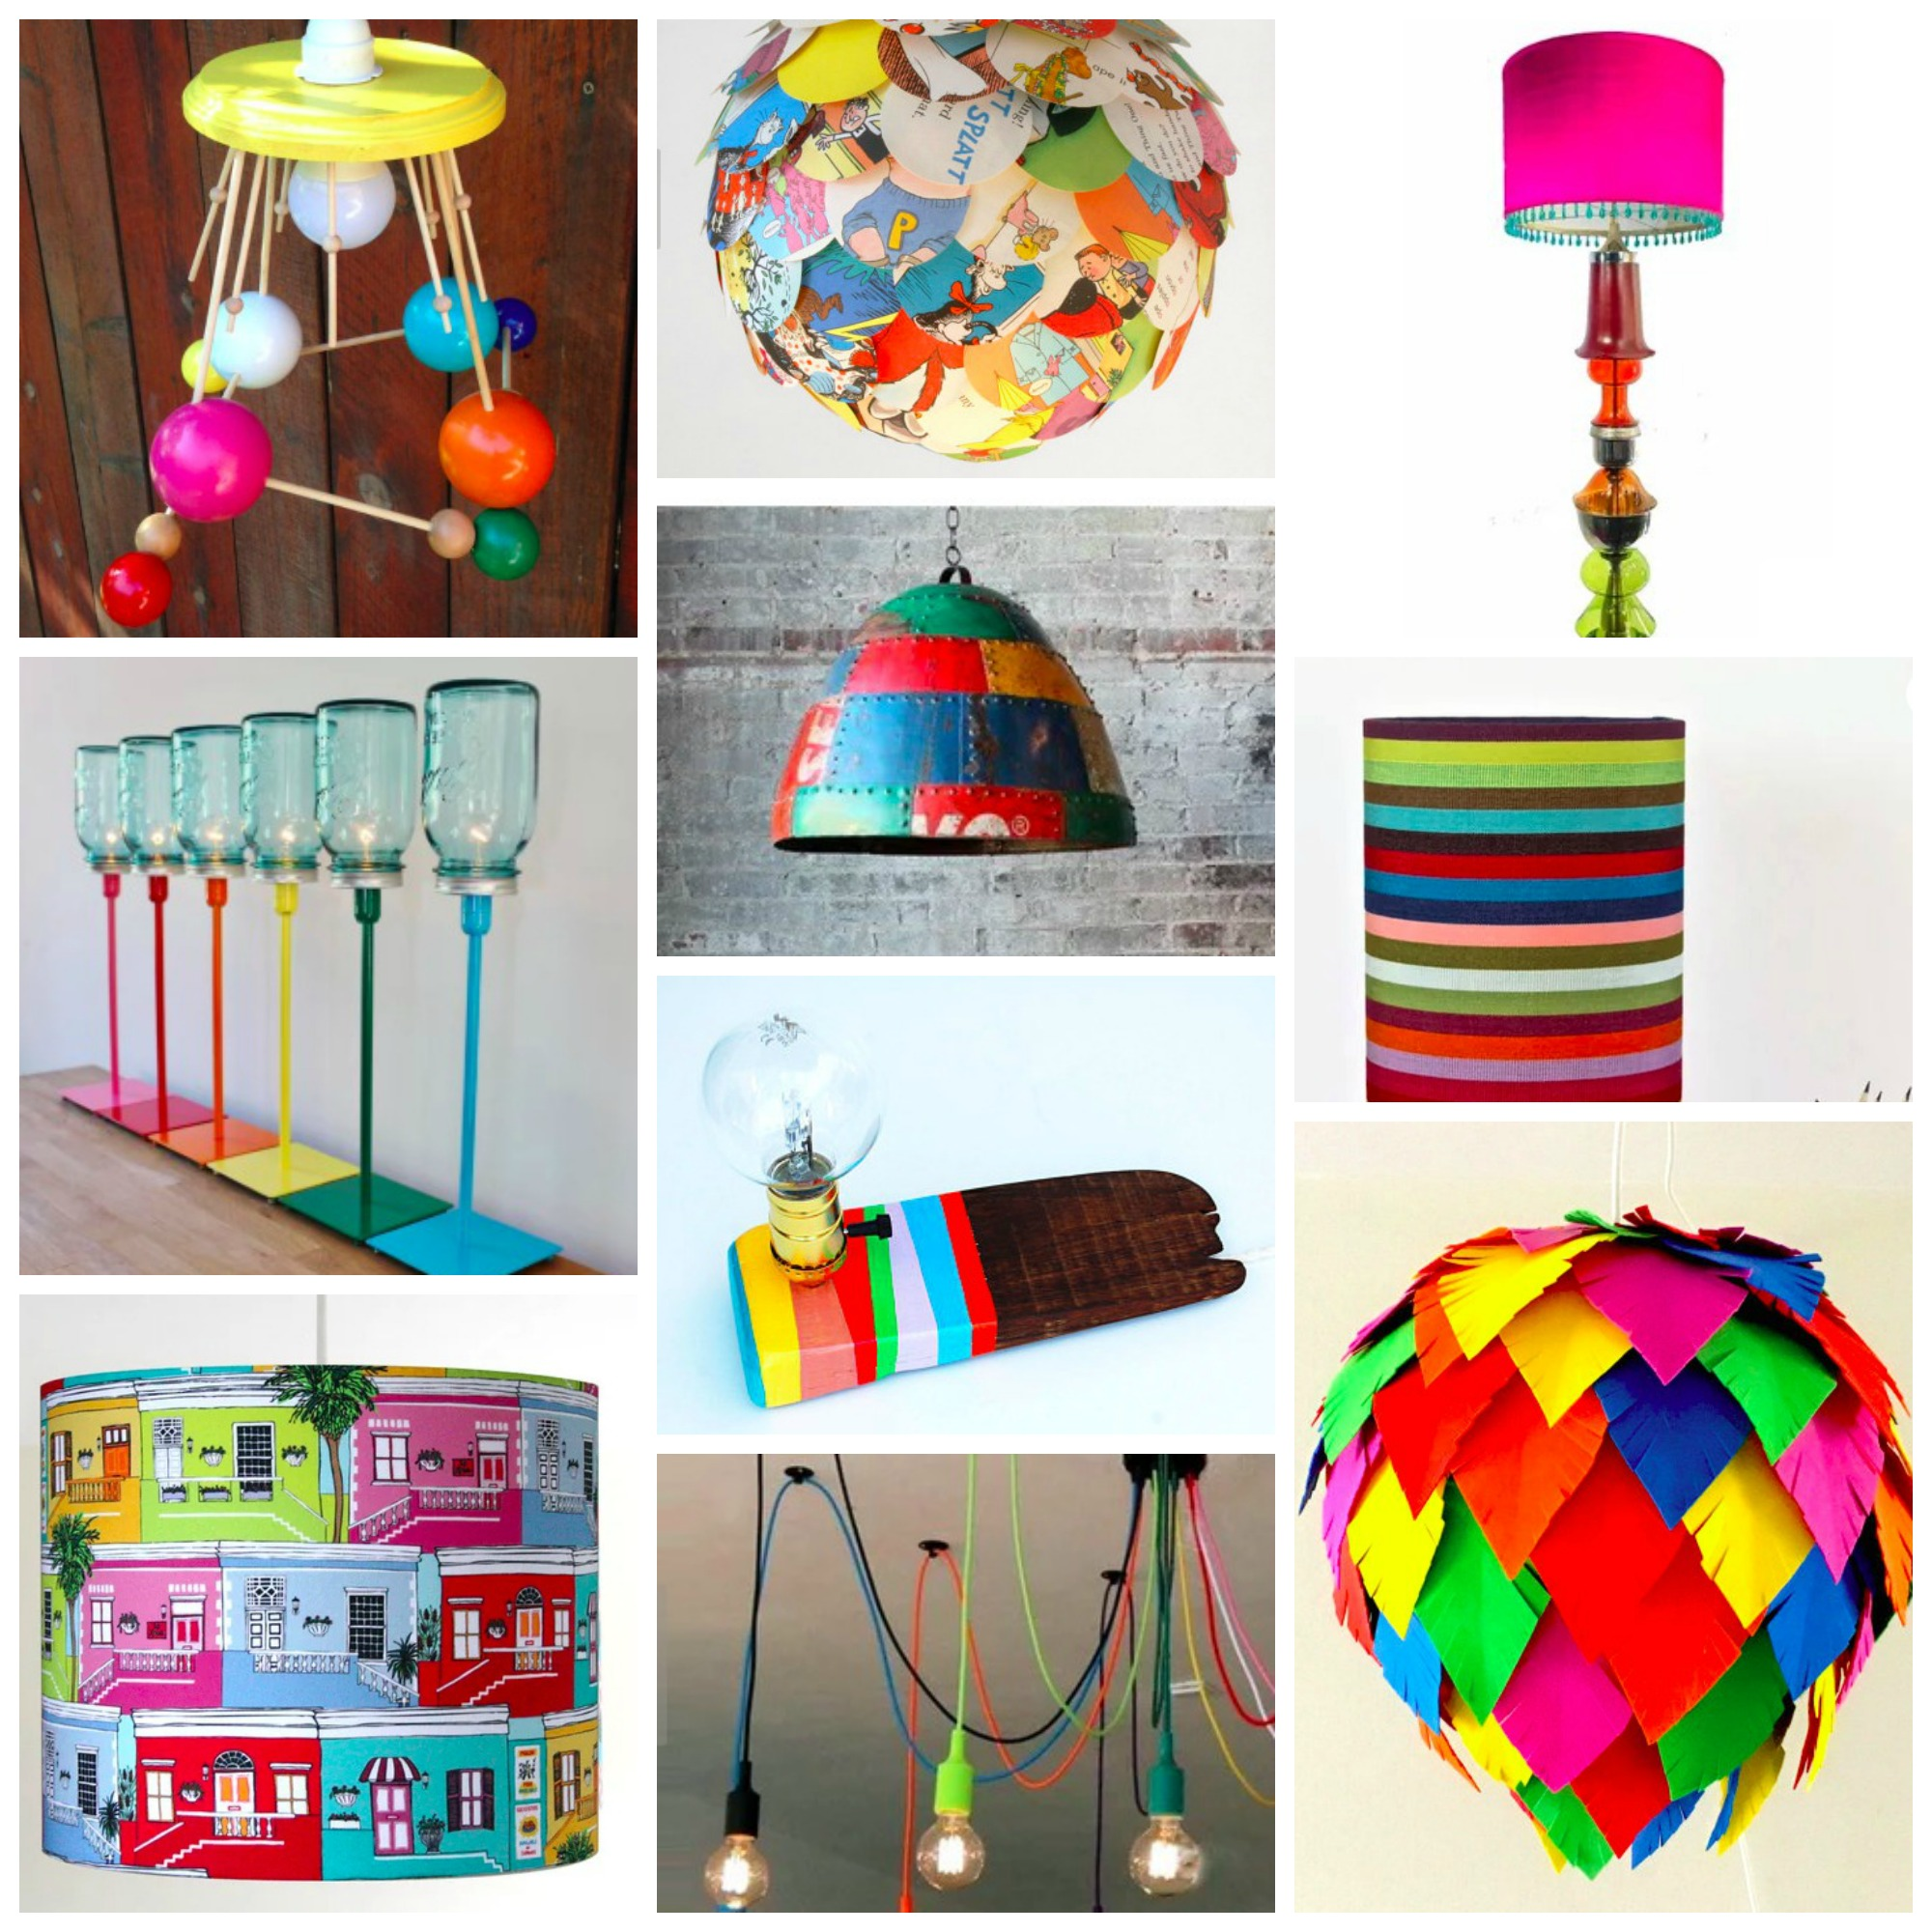 Top 10: Most Colorful, Bold and Unique Lamps and Lights From Etsy For Your Home